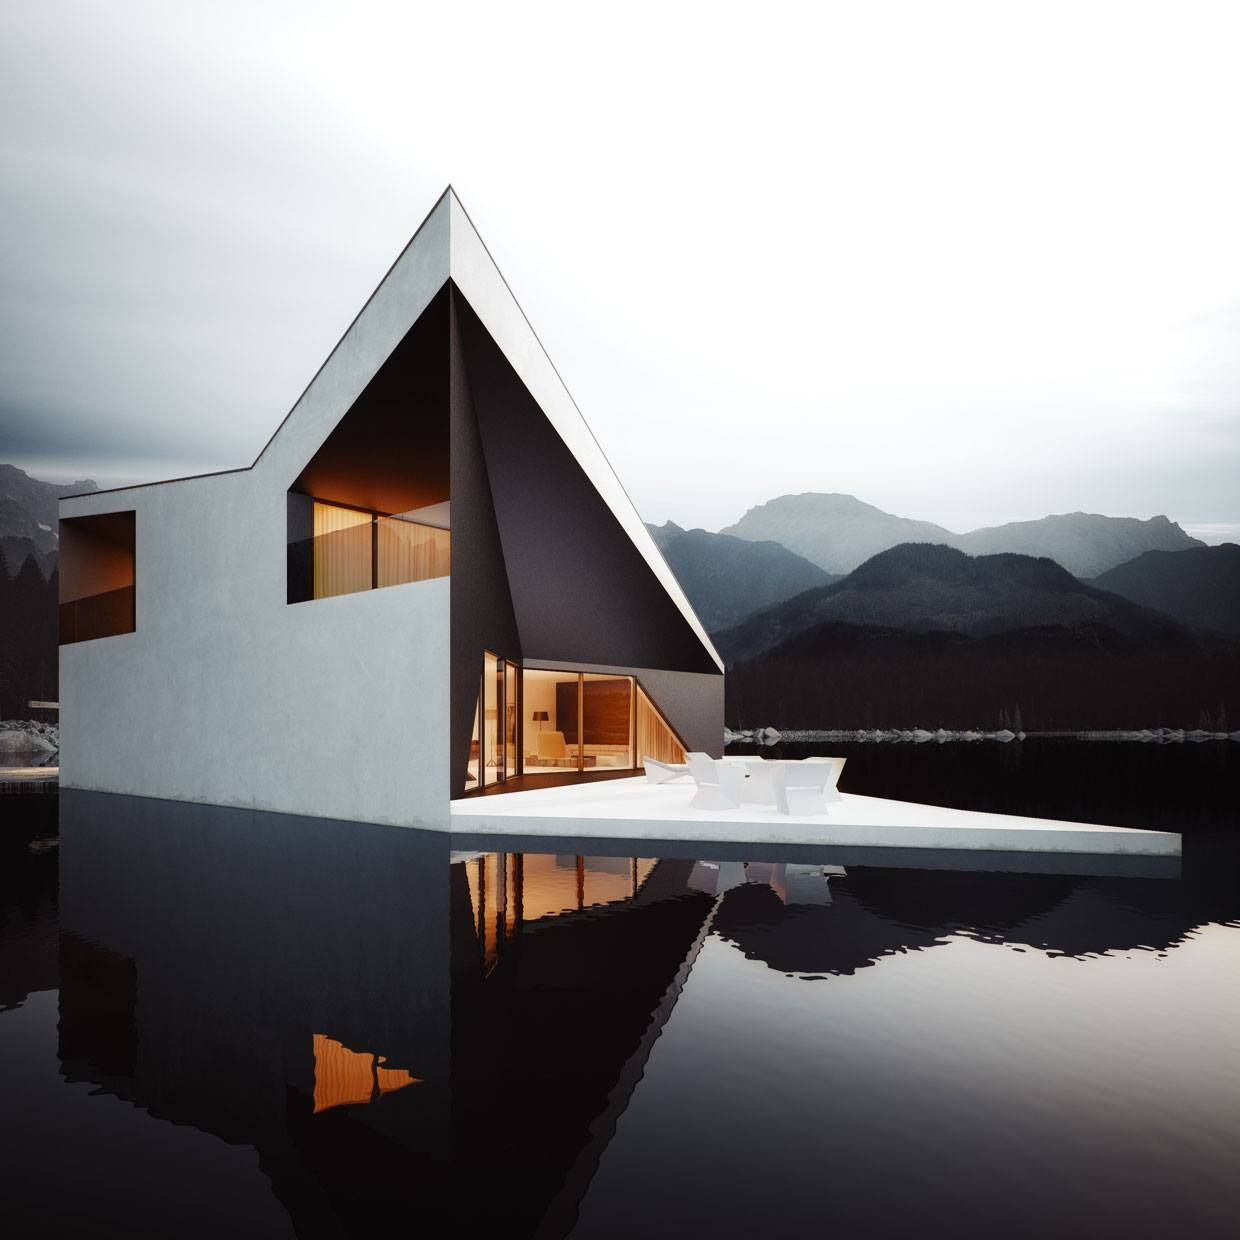 This stunning almost mystifying visualization was created by michael nowak for polish architectural practice the razor sharp lines and rich dimensional